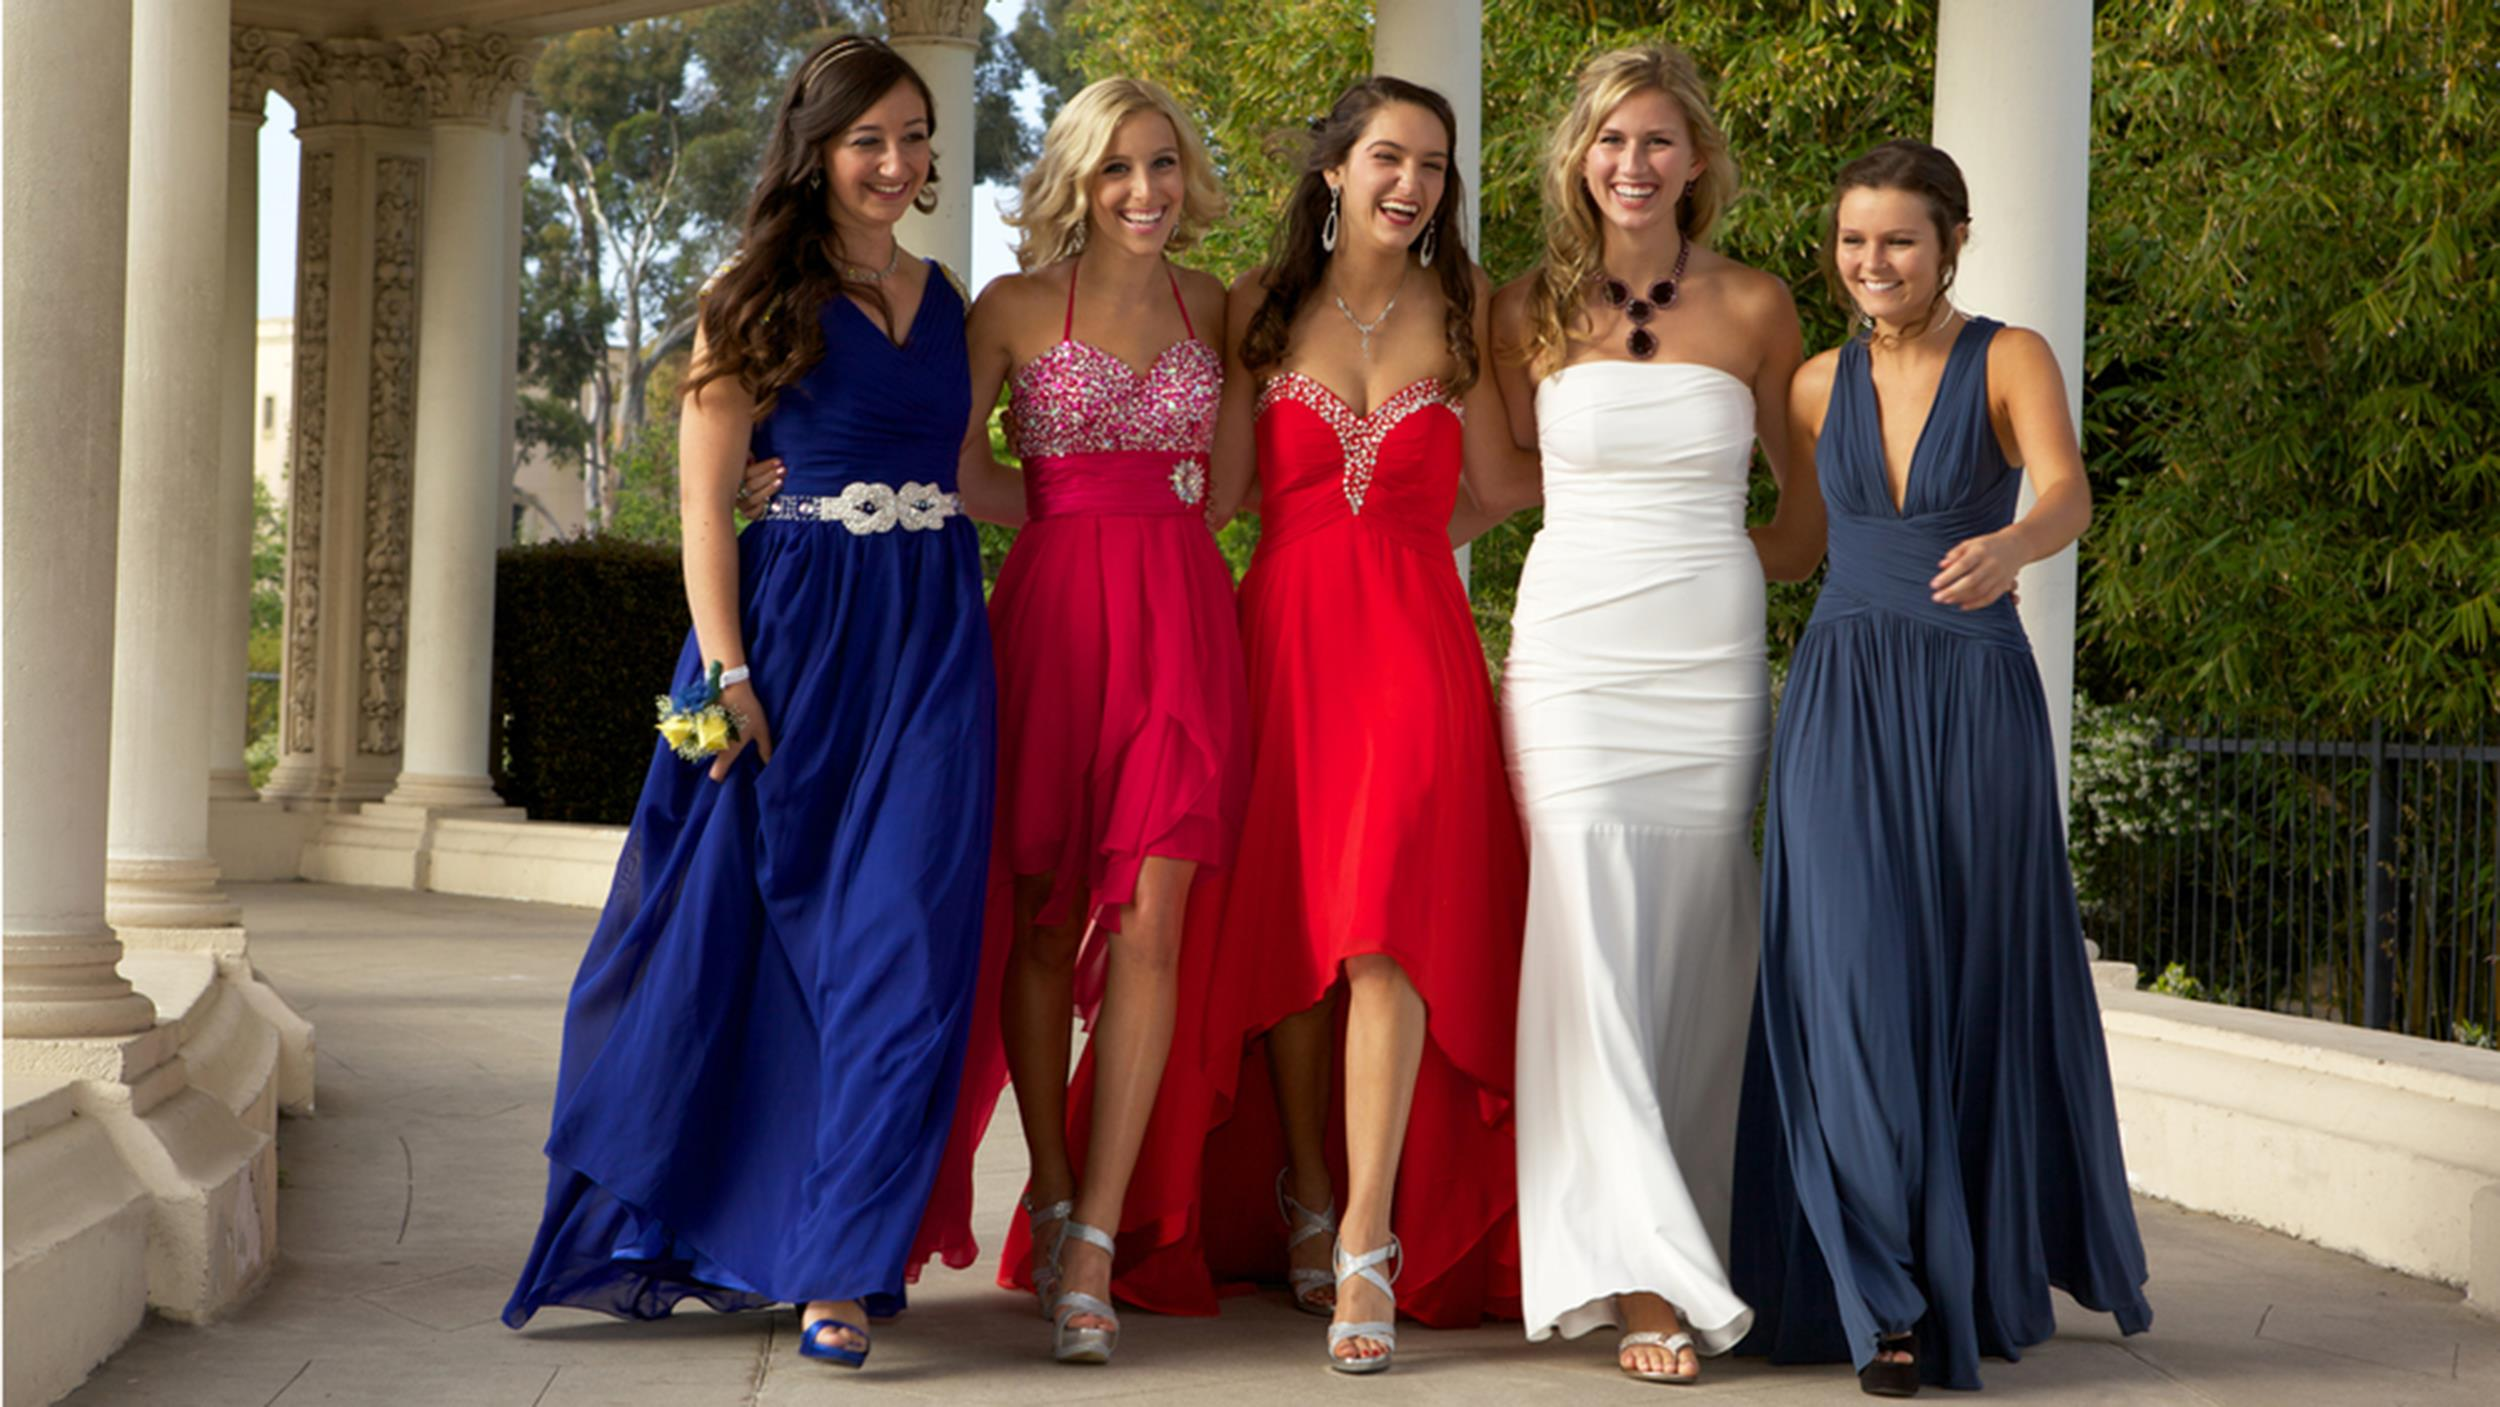 School Requires Preapproved Prom Dresses, Sparks Angry